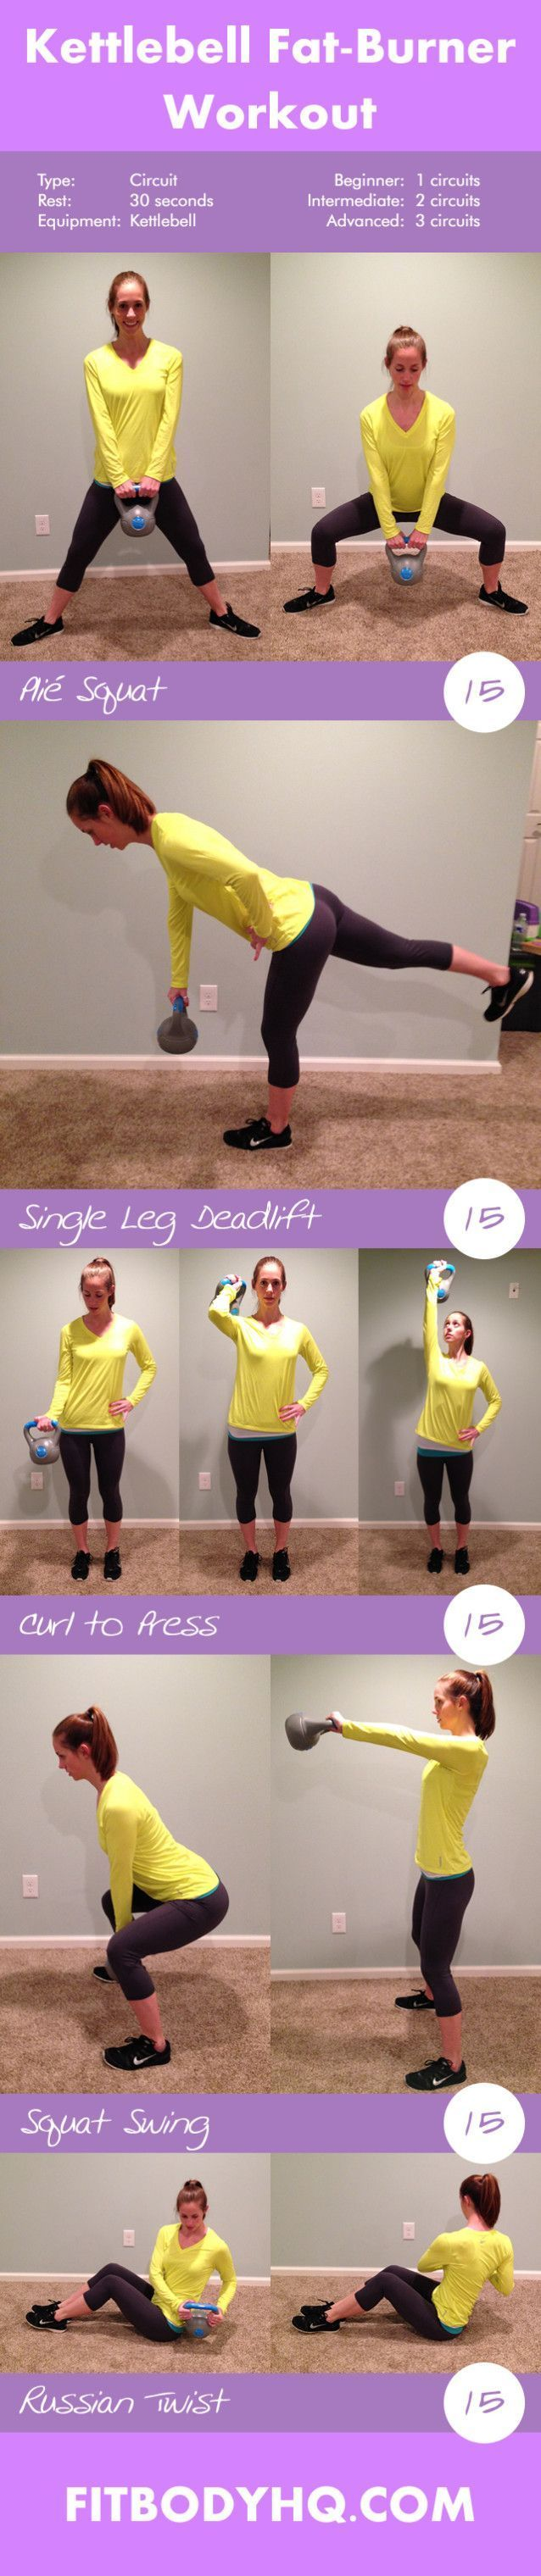 awesome Kettlebell Fat-Burner Workout - FitBodyHQ